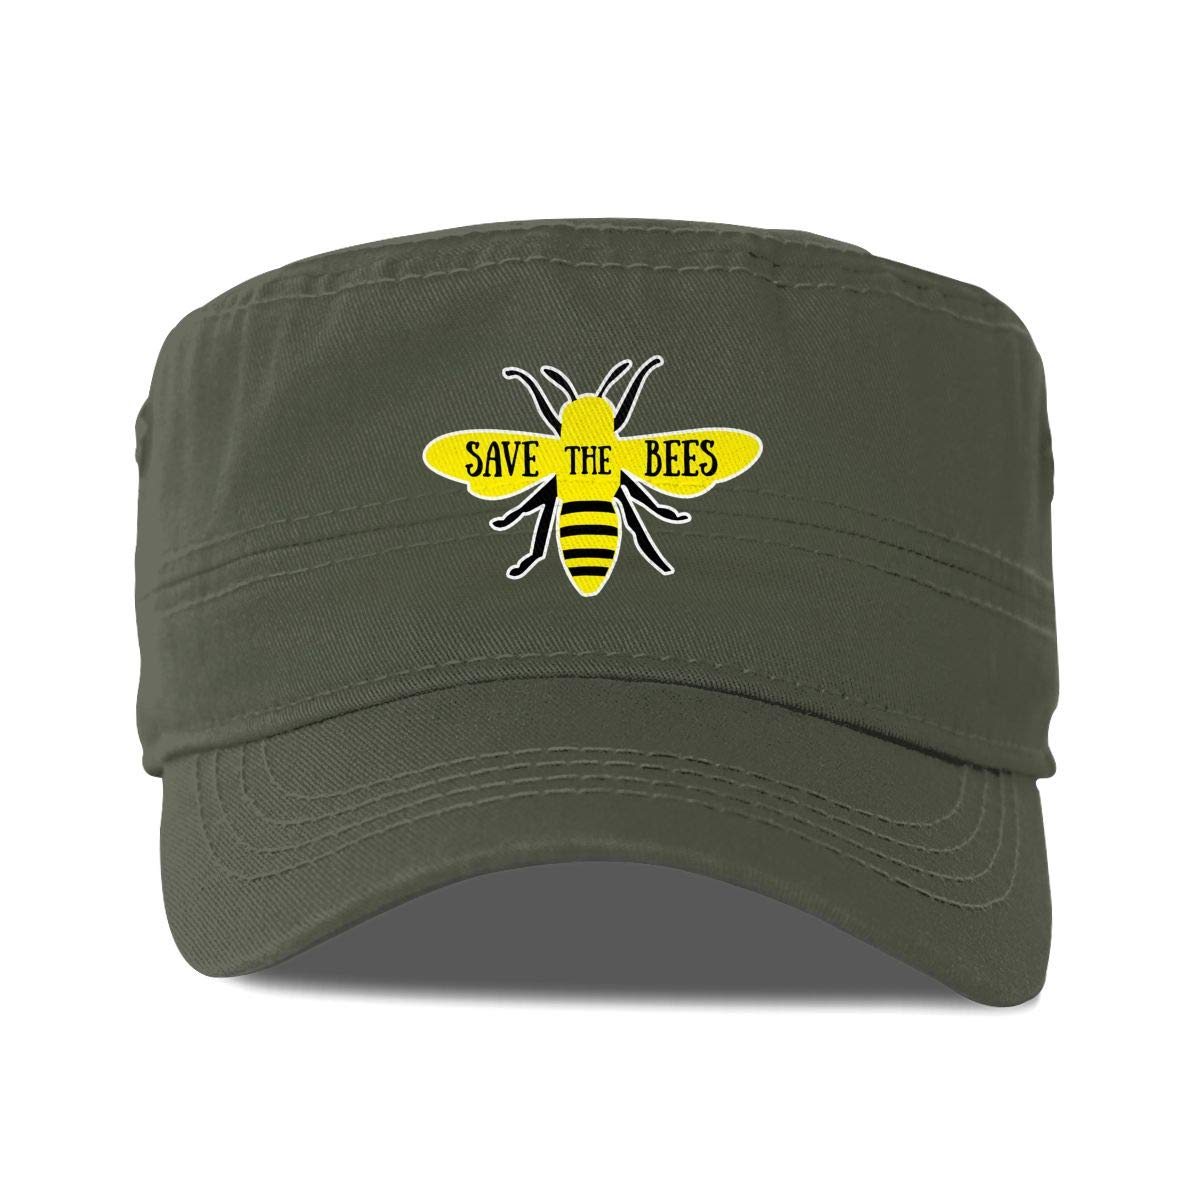 Save The Bees Unisex Adult Cotton Military Army Cap Flat Top Hat